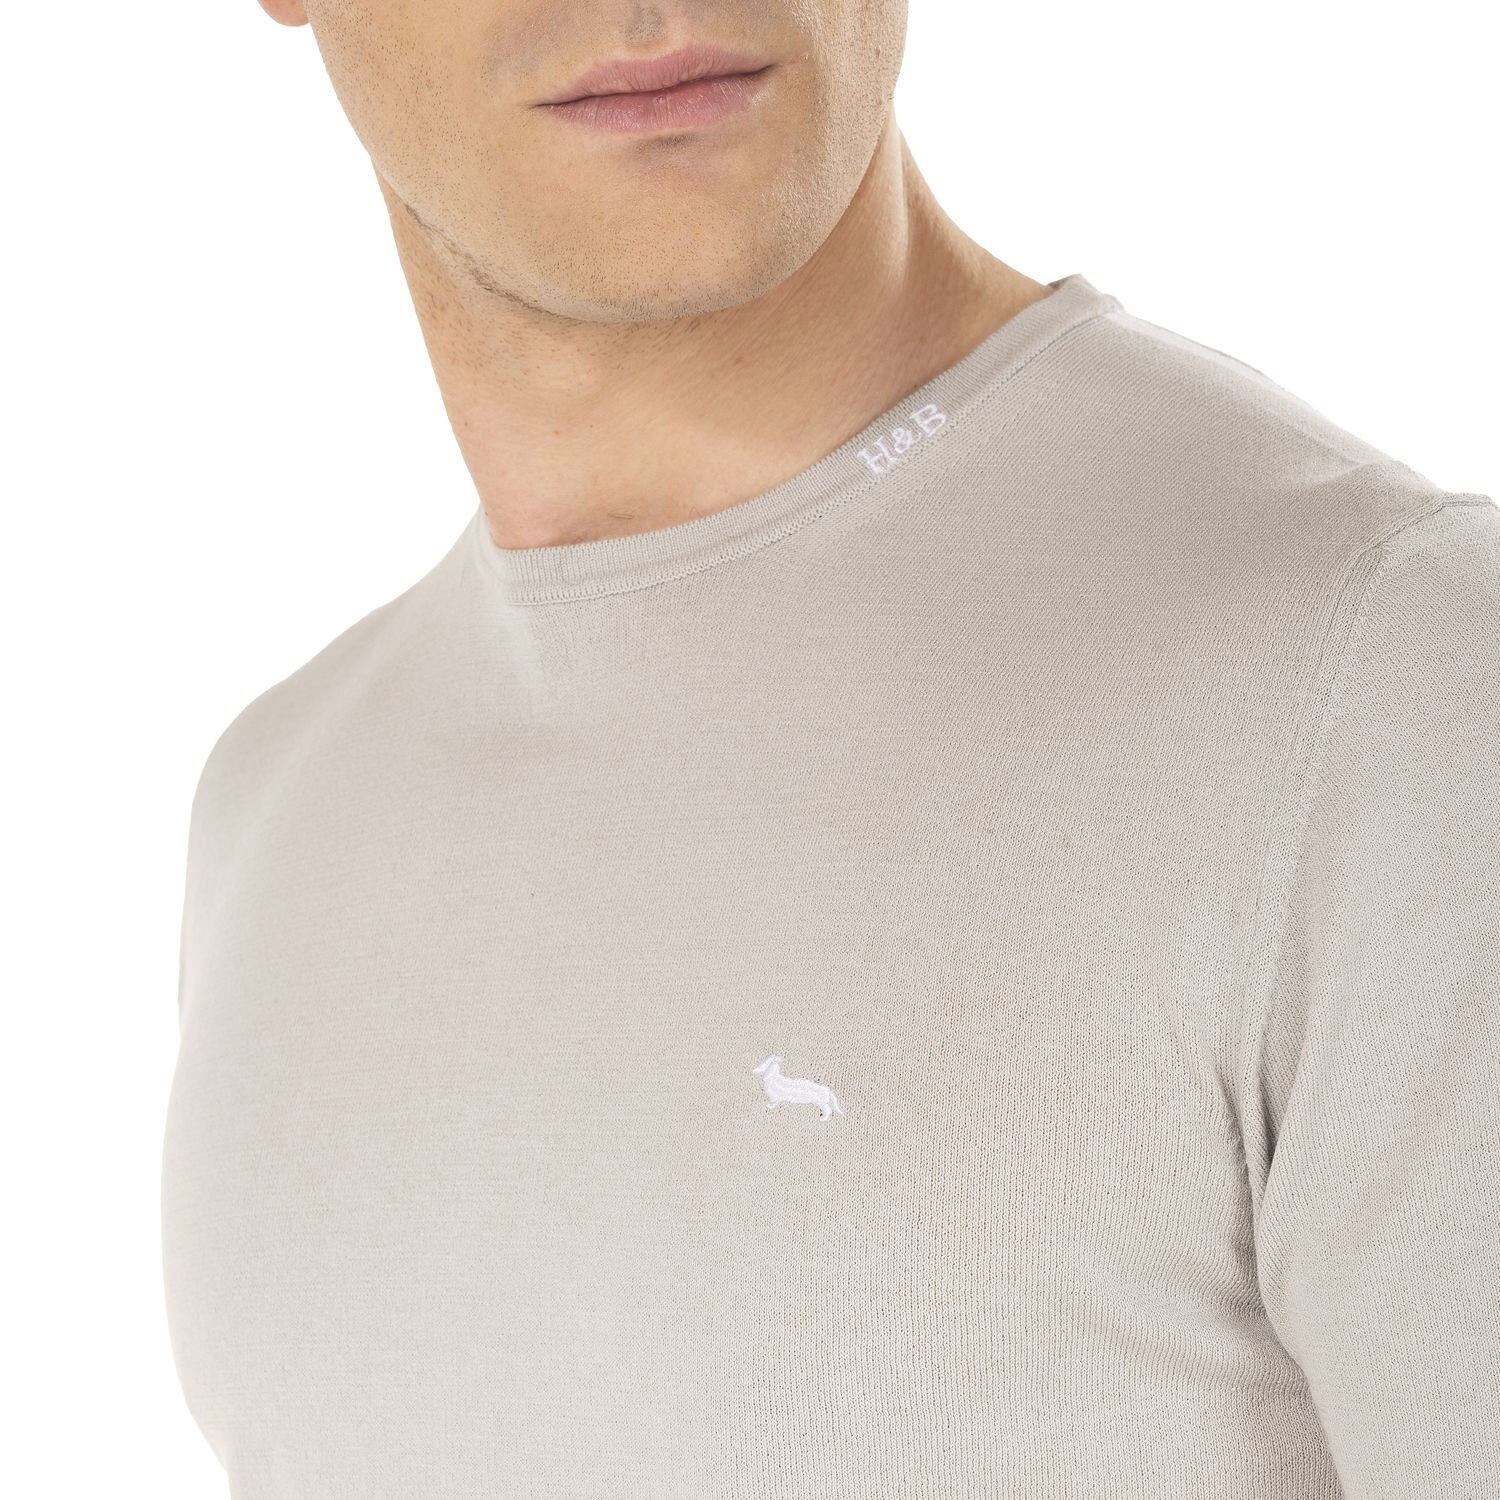 T-shirt in cotone Harmont and Blaine HARMONT & BLAINE | T-shirt | HRF239030728900